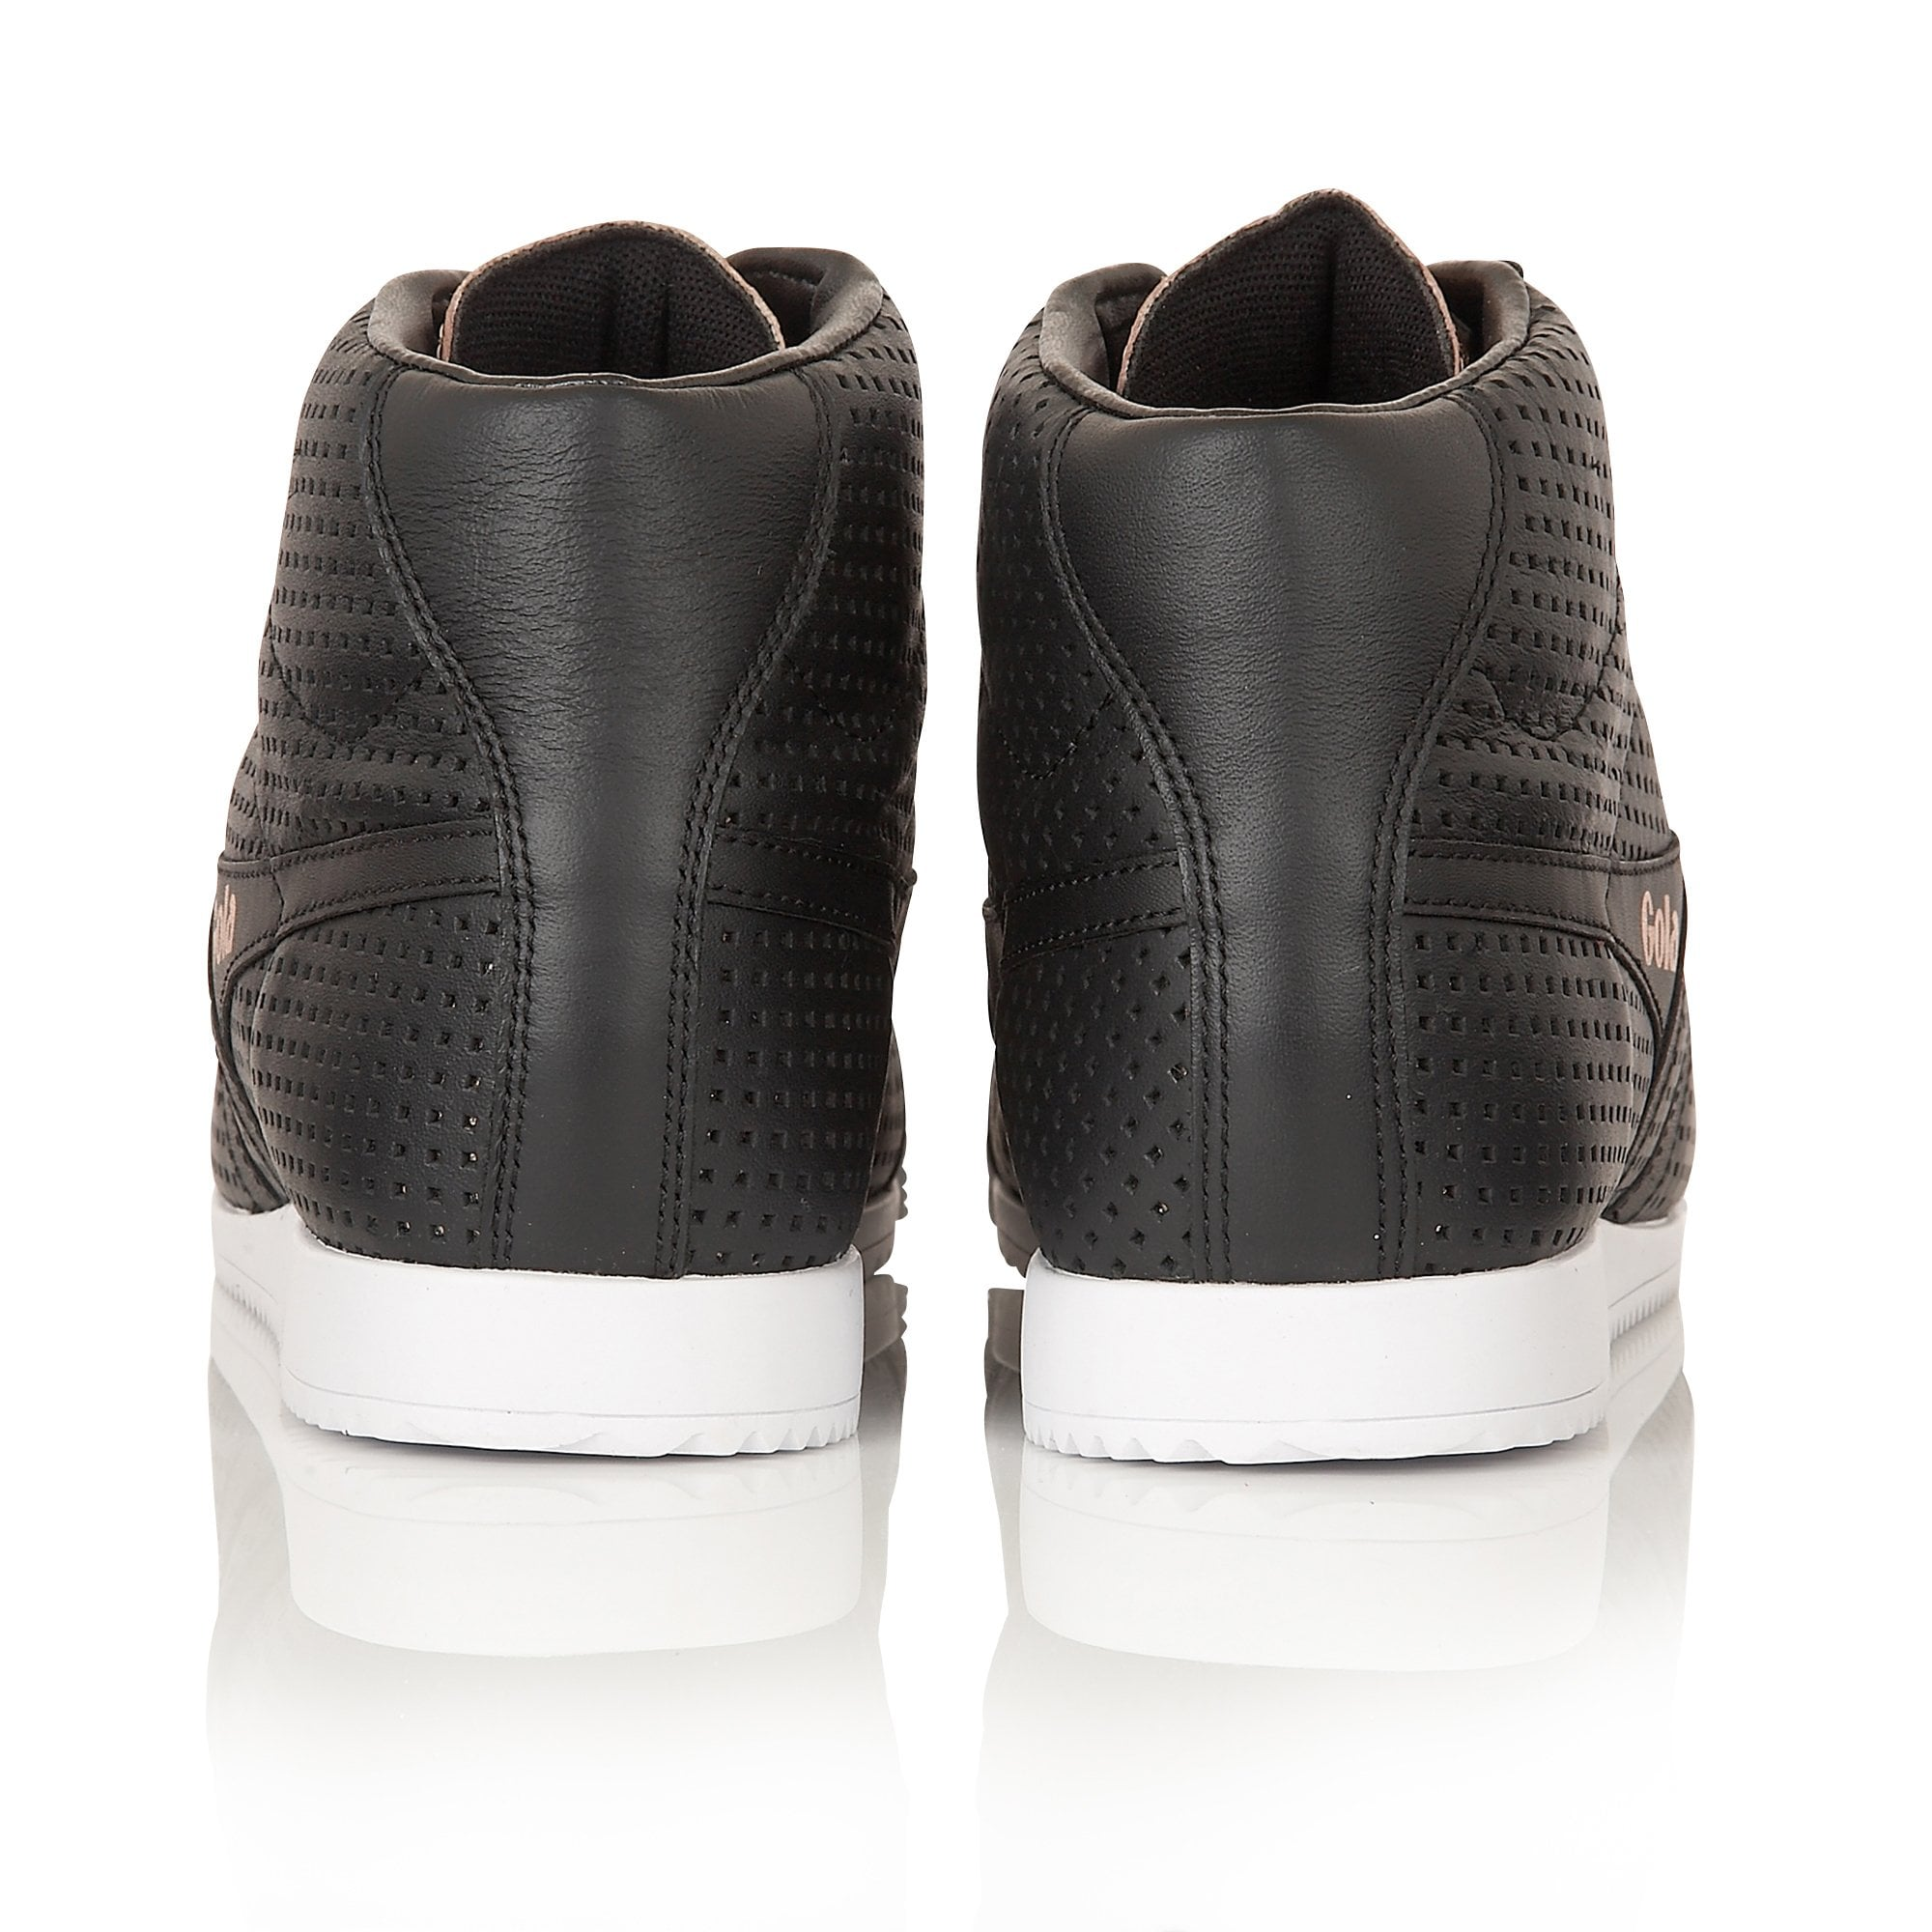 Women's Harrier High Glimmer Leather Sneakers